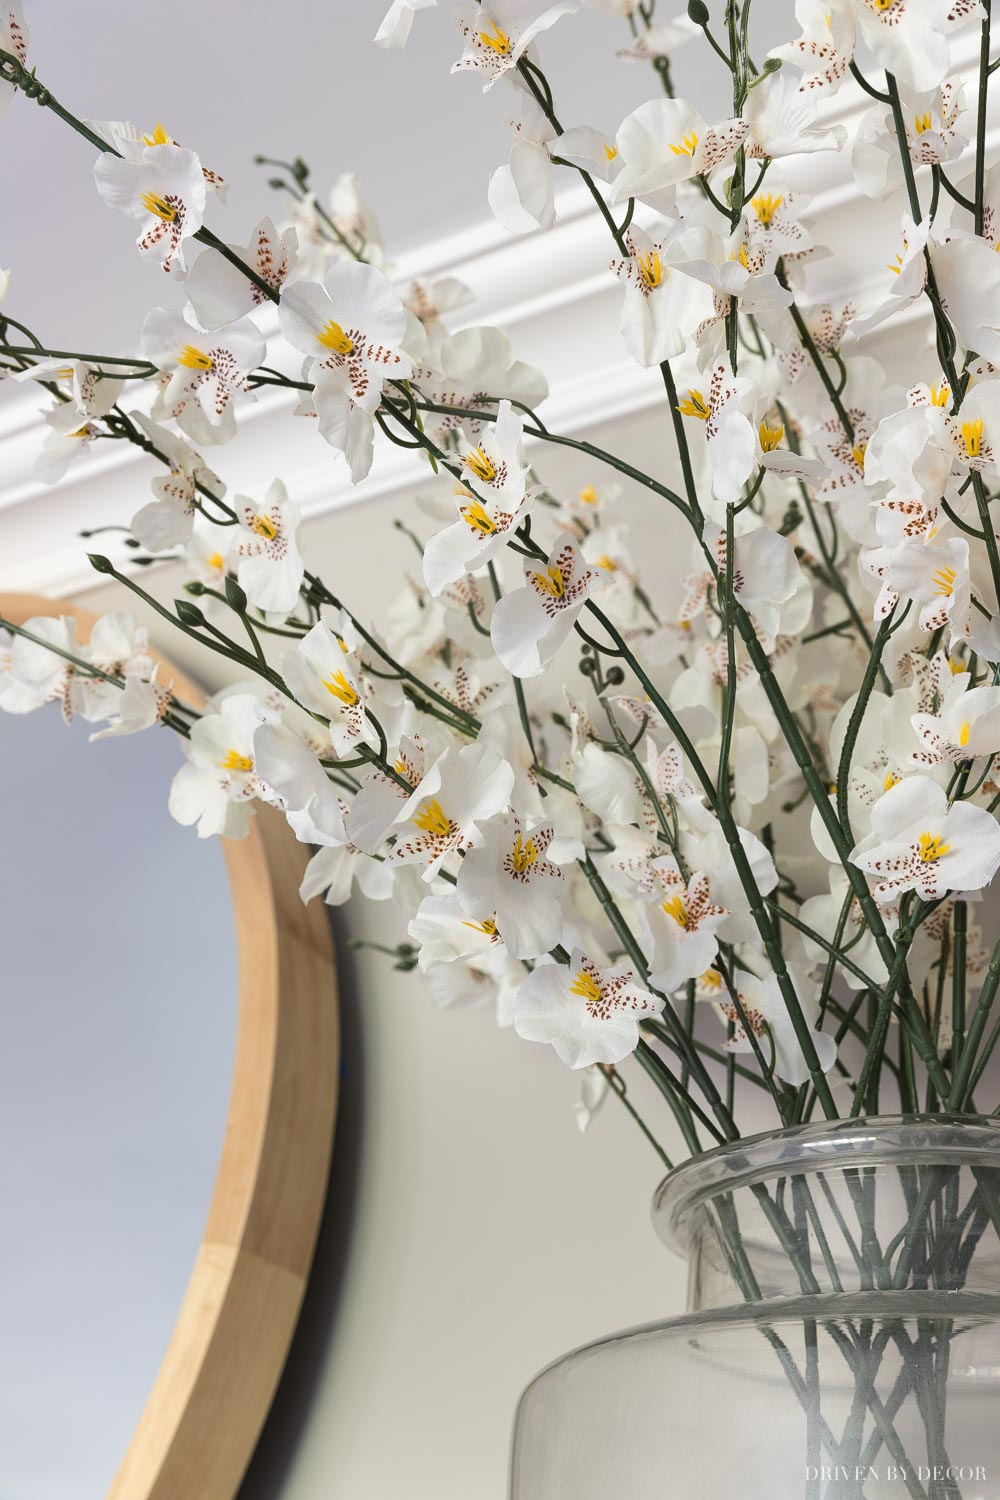 A close-up of the artificial flowers on our fireplace mantel - love!